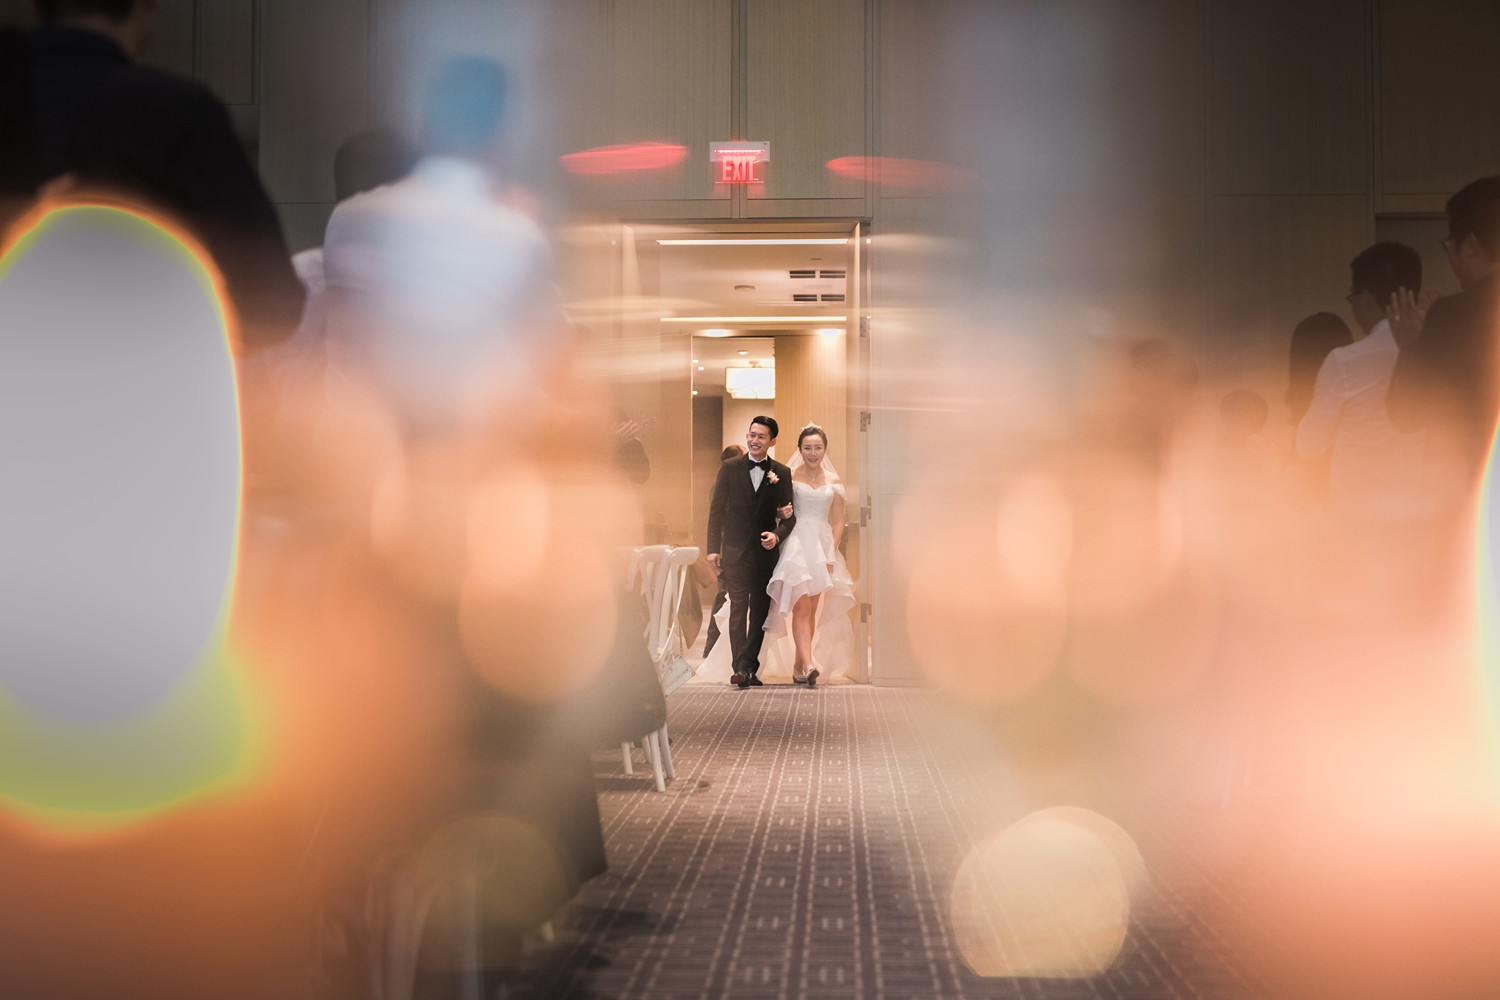 Wedding Reception Entrance Vinci Room Luxury Yorkville Toronto Four Season Hotel Wedding Photos with Chinese Bride and Groom